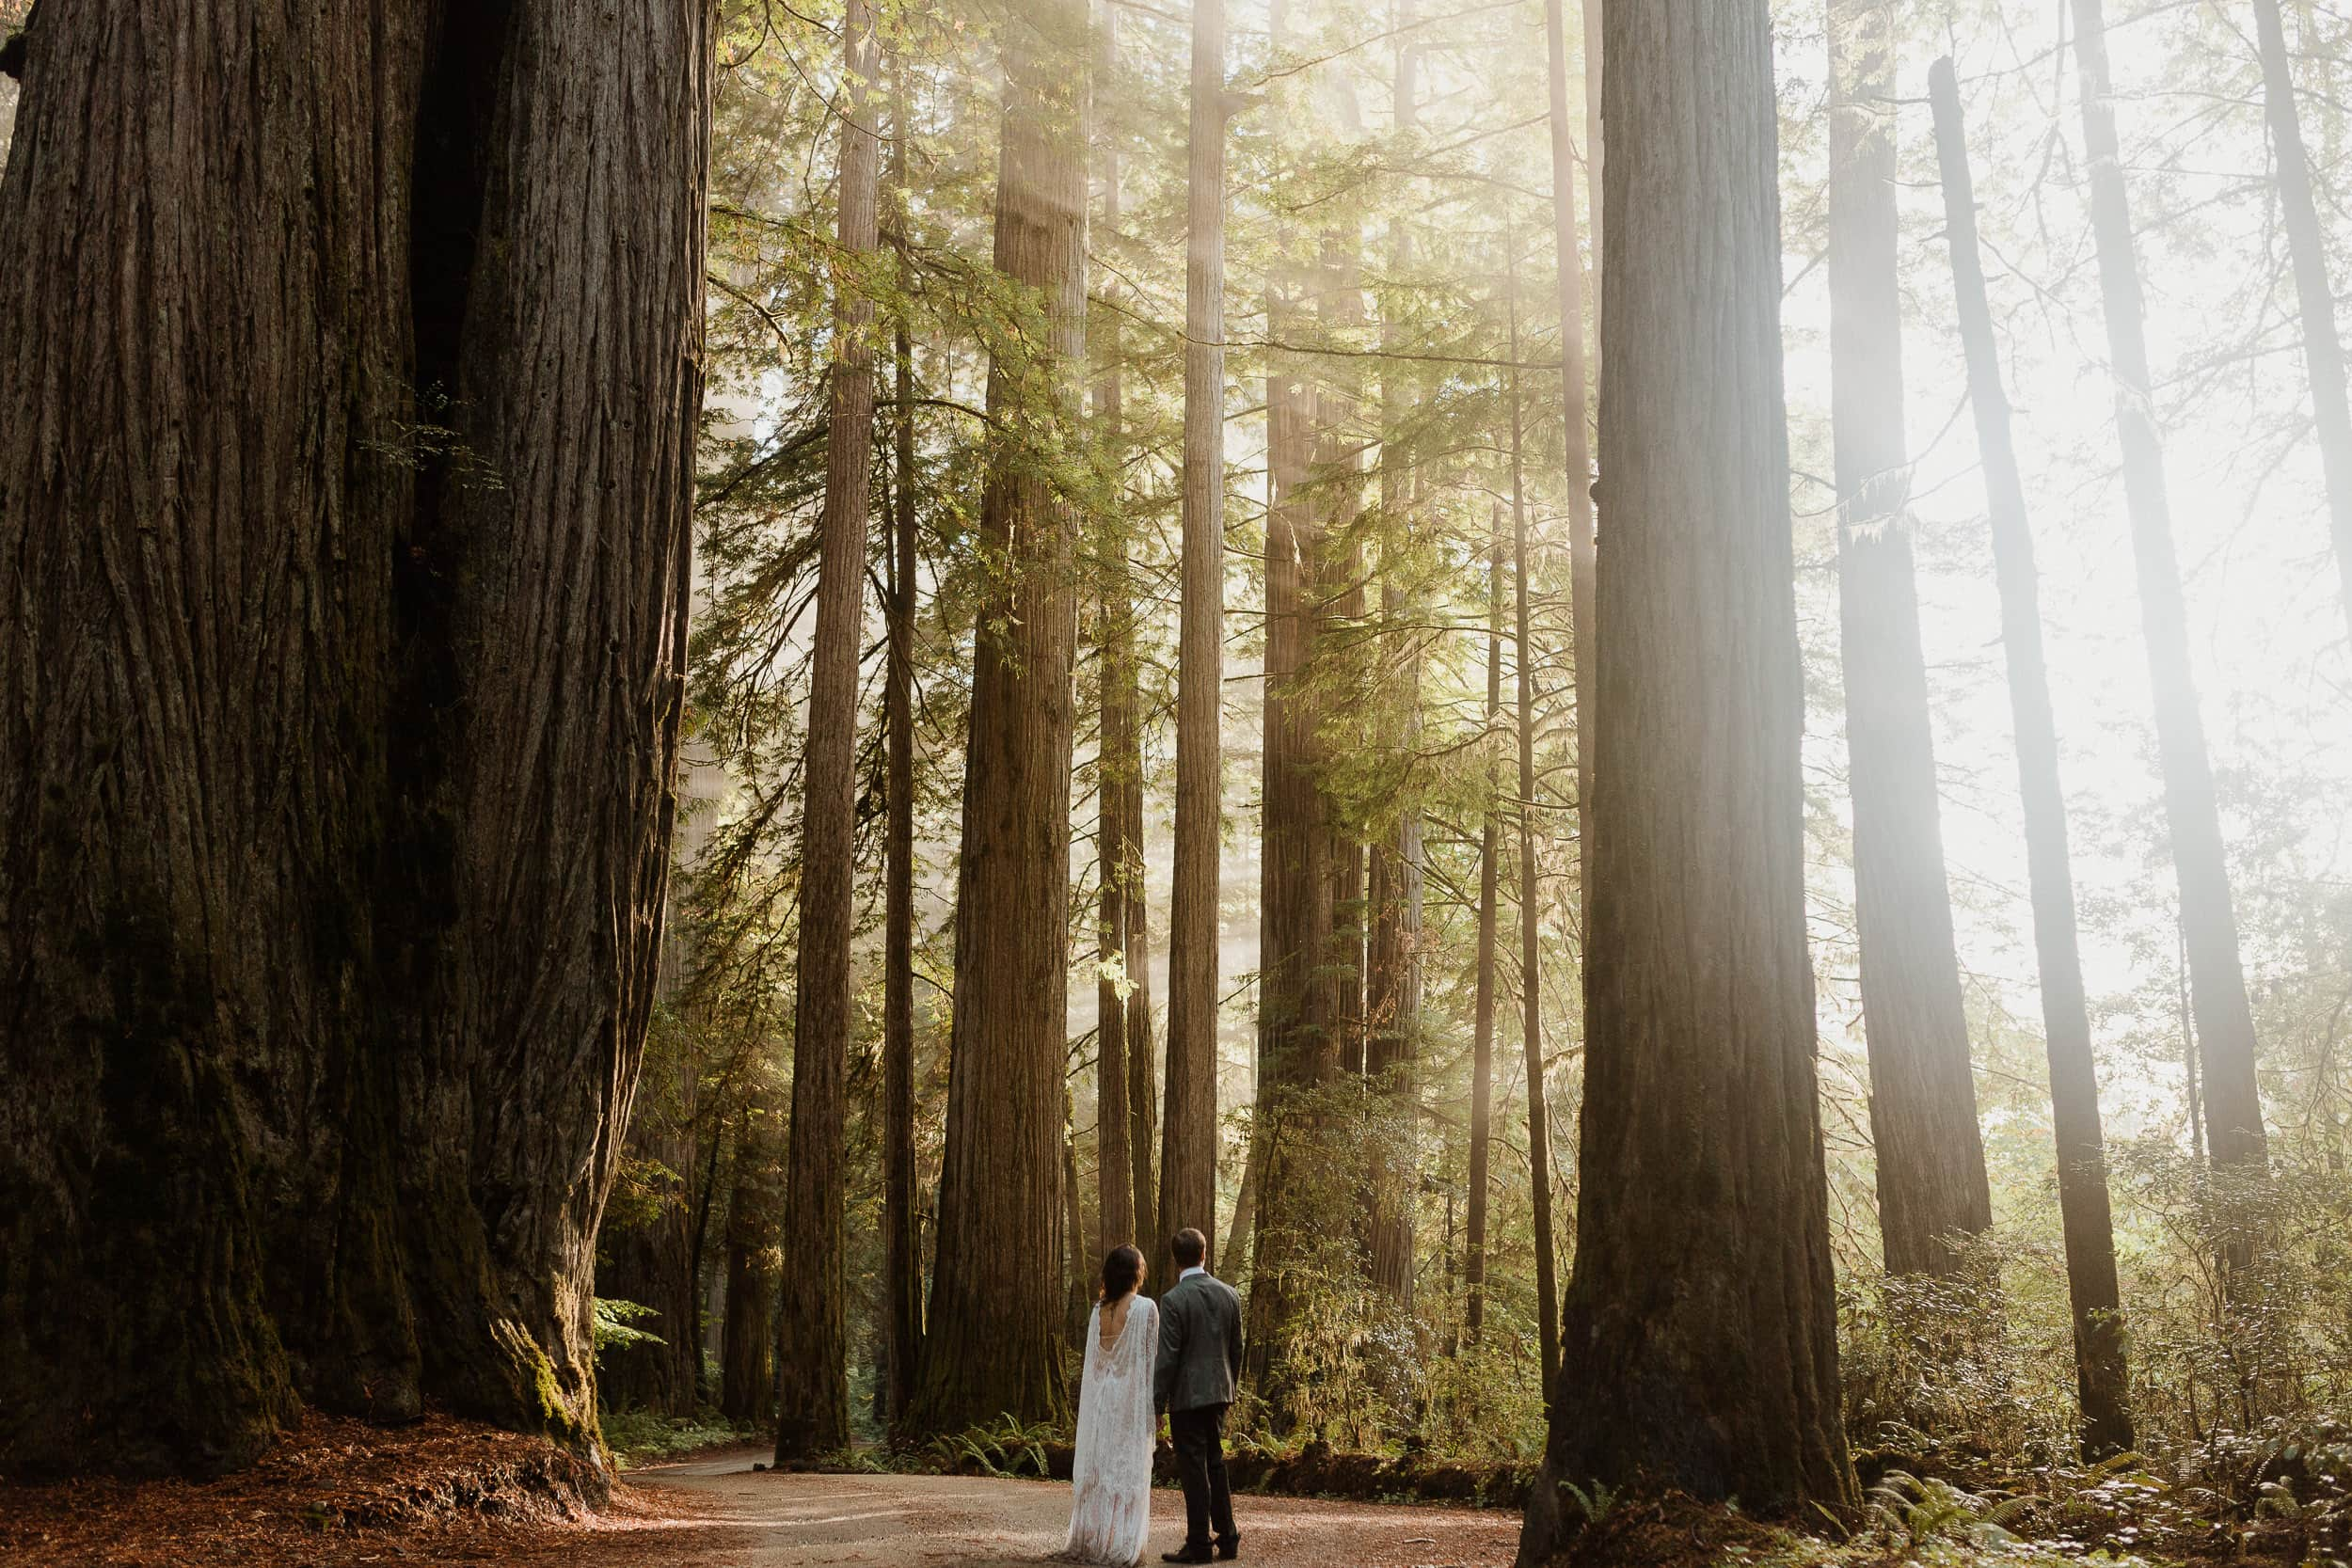 tiny couple amongst giant redwood trees